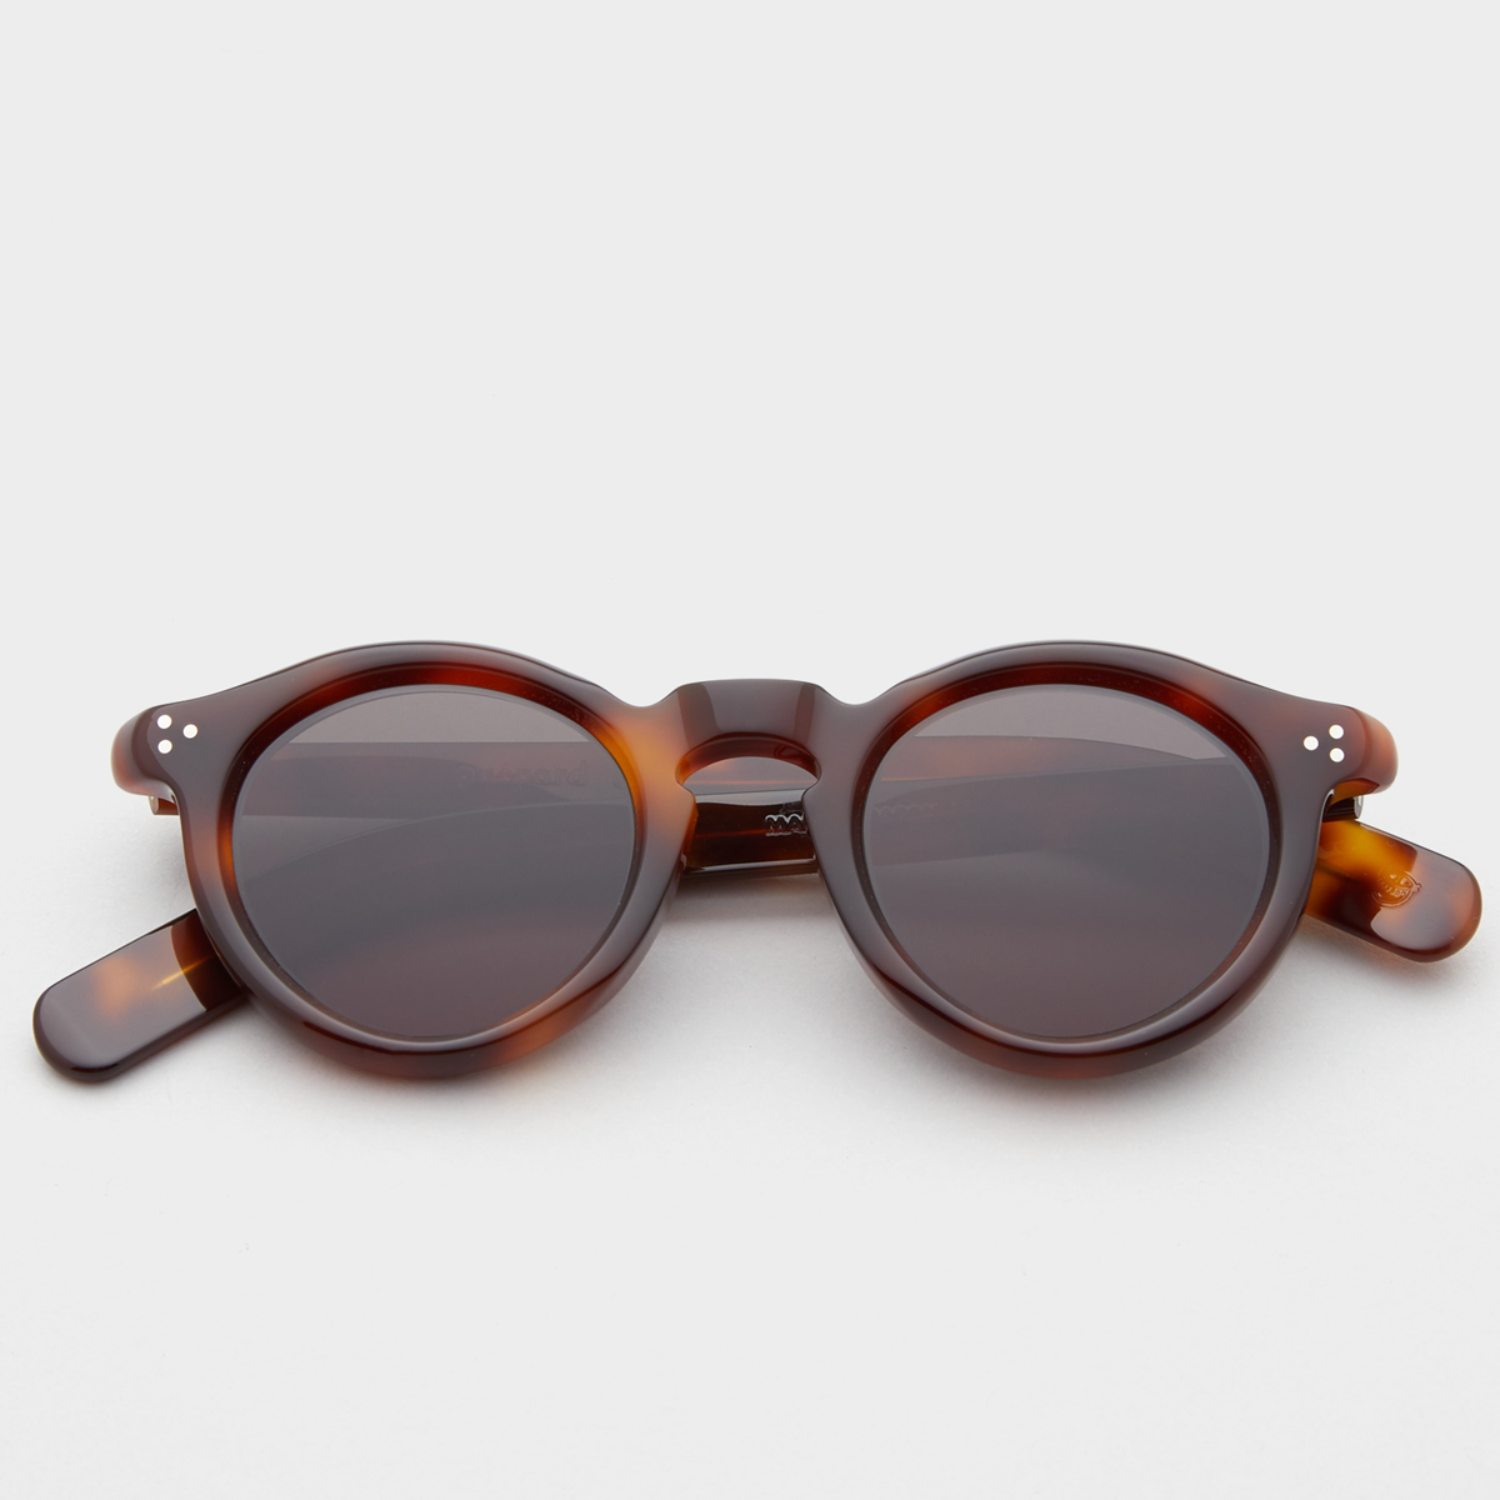 규파드선글라스 GP07 E Brown flat Lens guépard